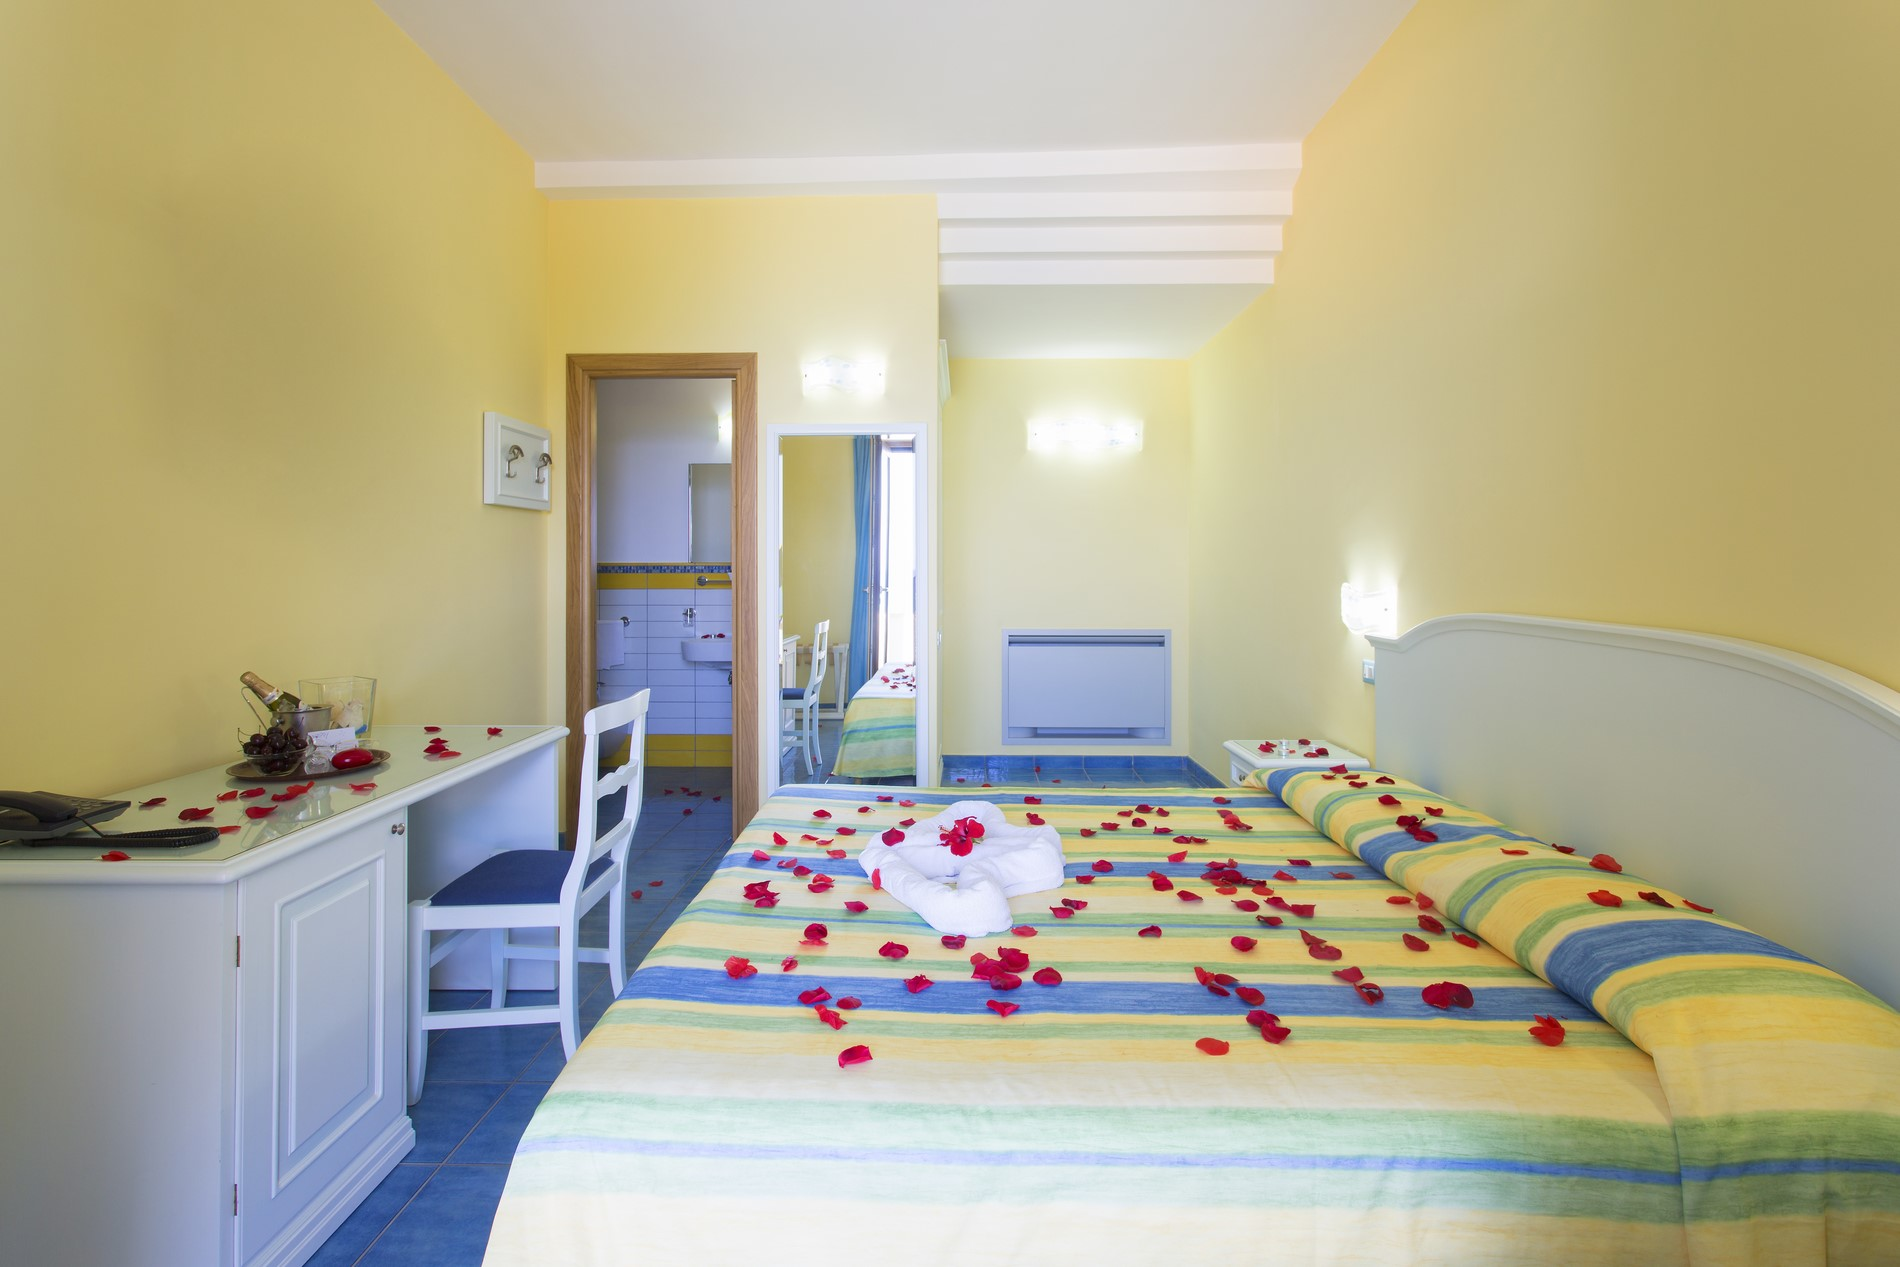 http://www.hotelcavadellisola.it/wp-content/uploads/2016/02/91A1138-Copia.jpg